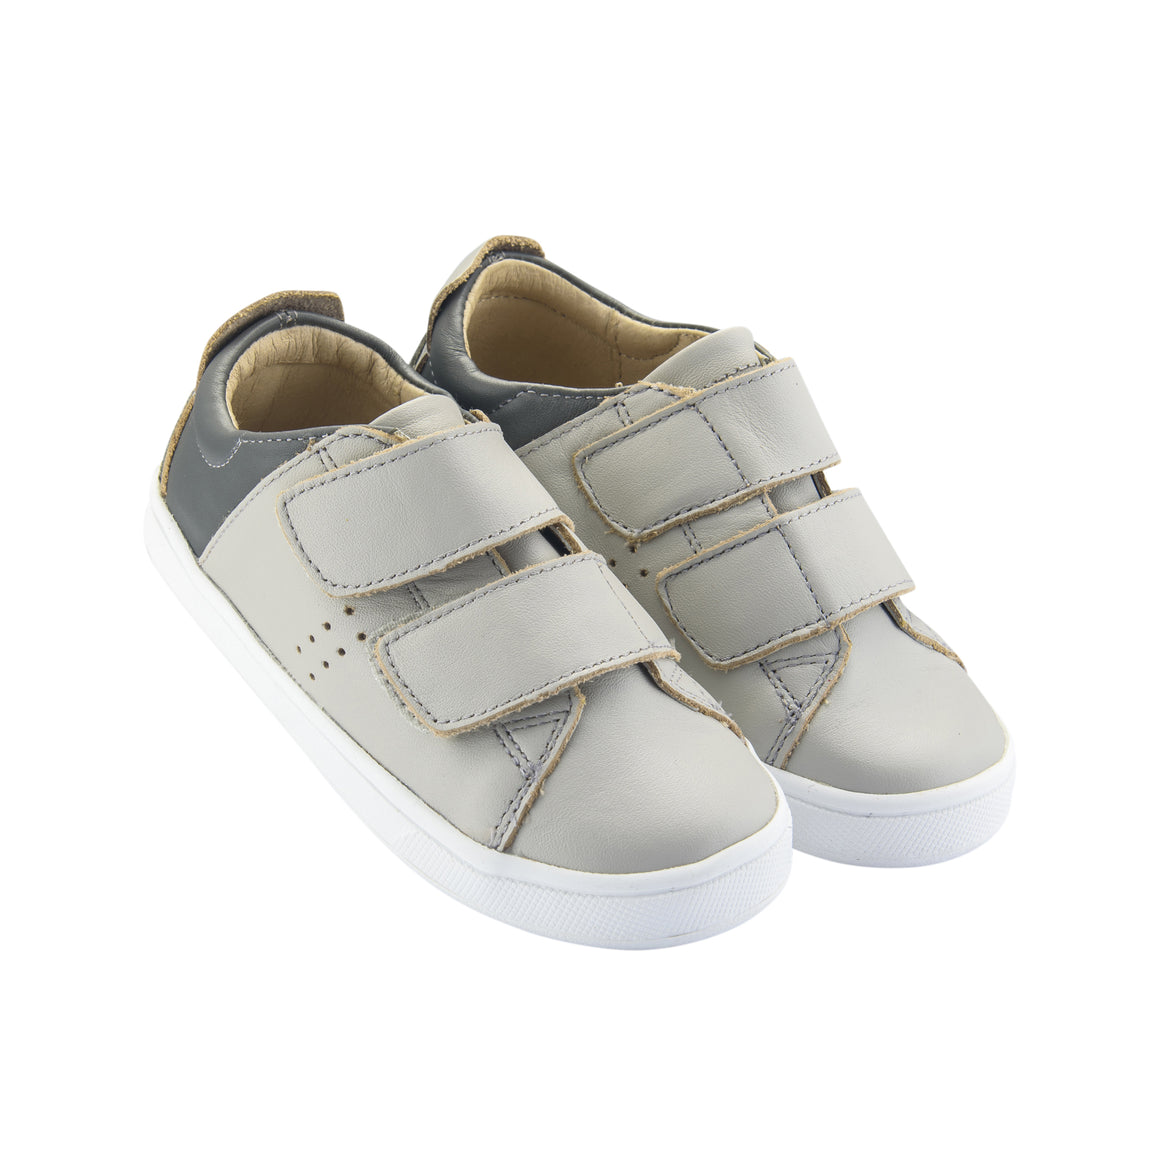 Old Soles | Toko (Toddler/Youth) Leather Shoes Gris / Grey